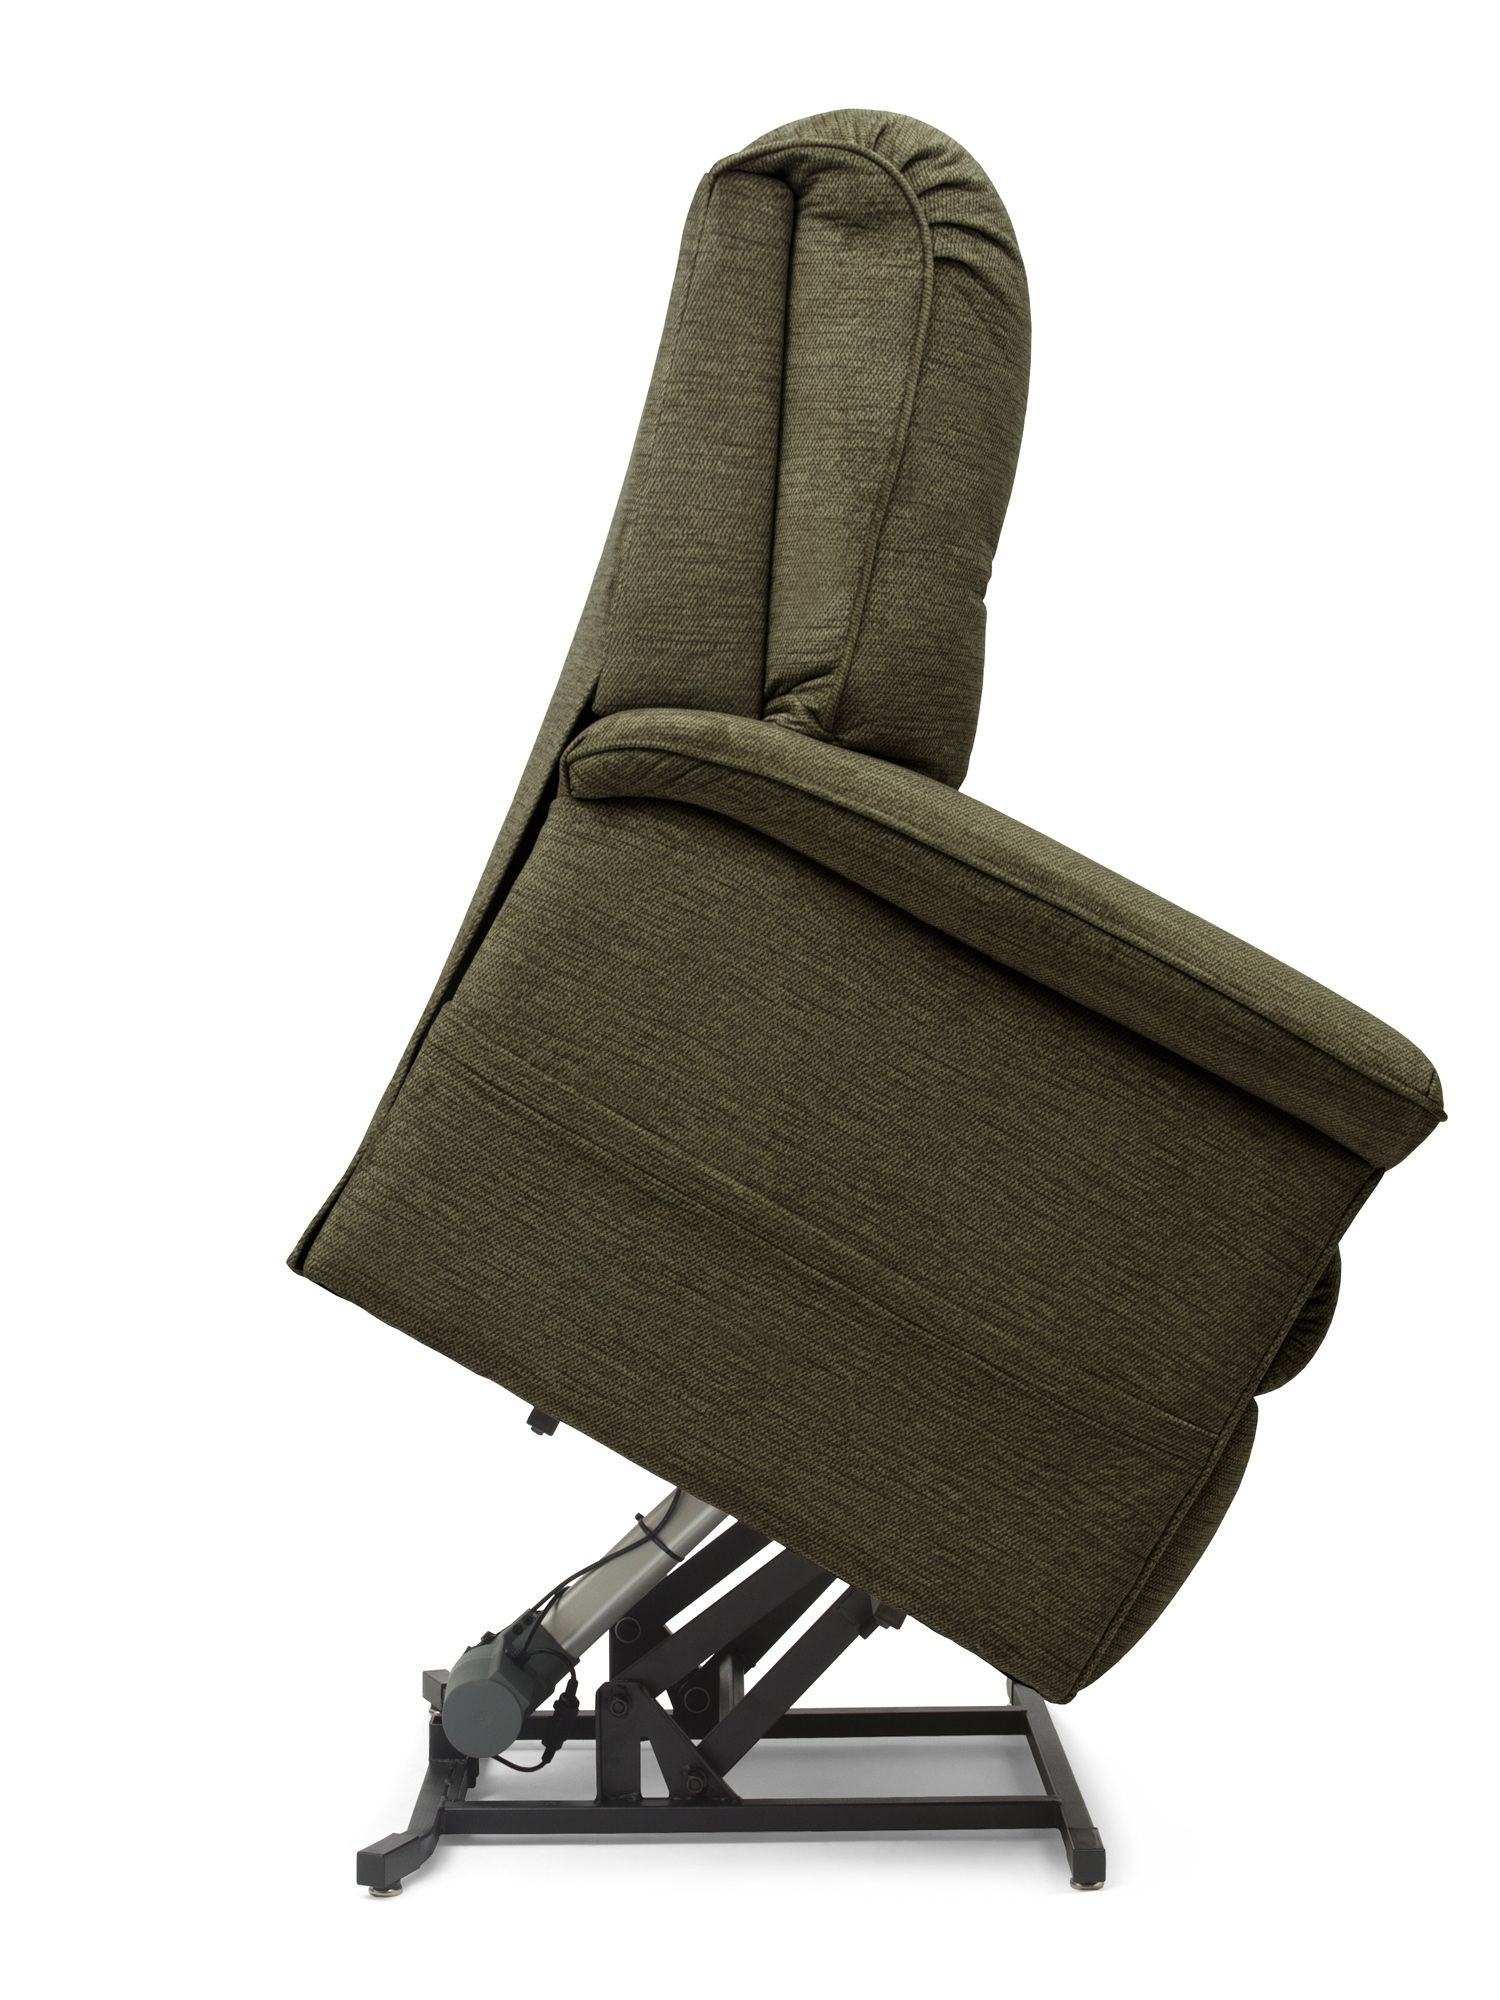 Pride LC-358 3-Position Lift Chair  sc 1 st  Mobility Scooters Direct & Heritage LC-358 Line 3-Position Lift Chair - Best Prices on Custom ... islam-shia.org